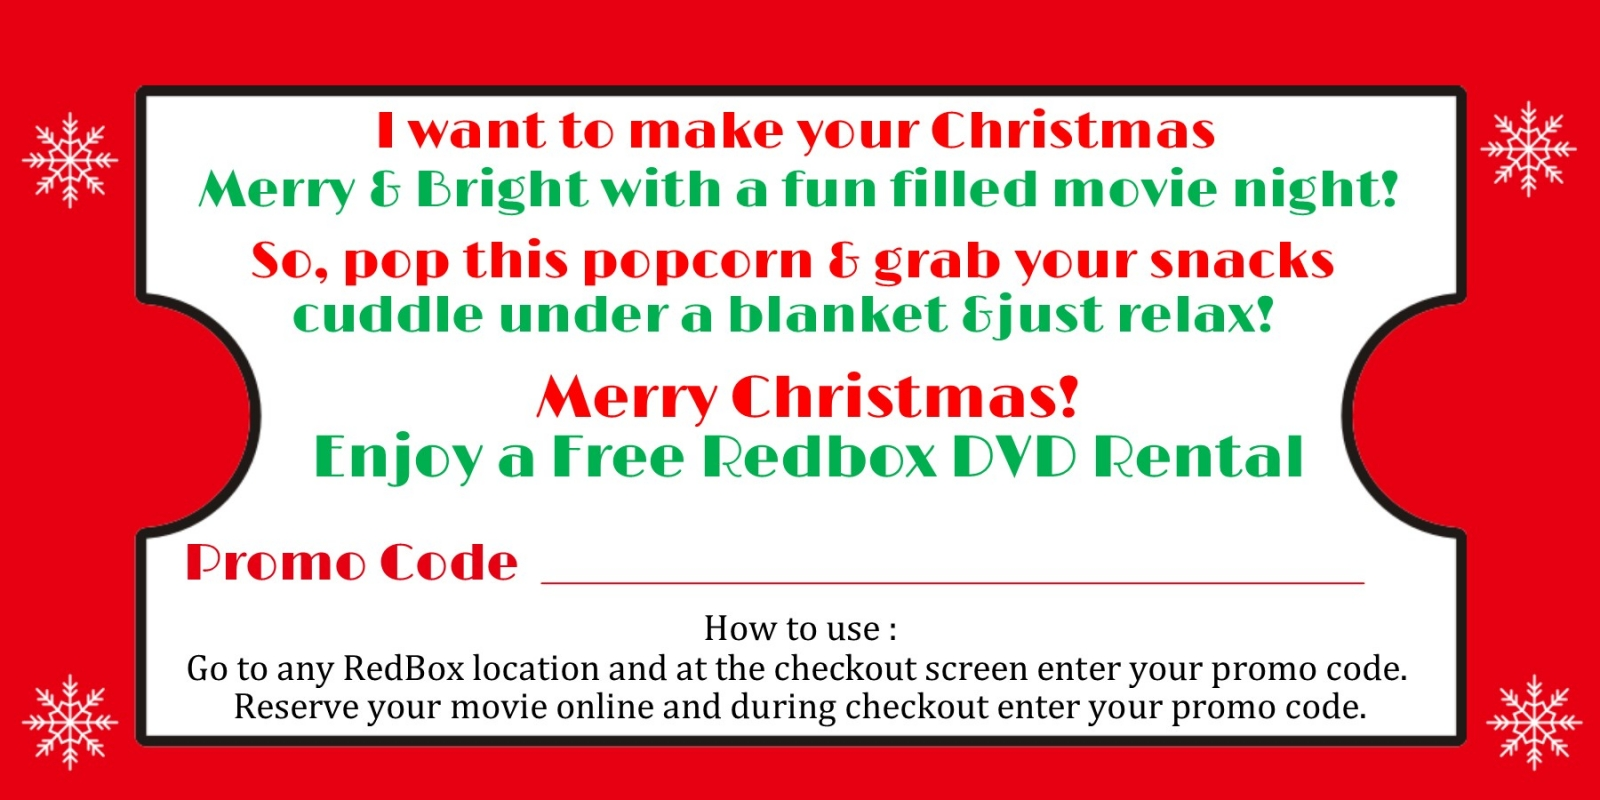 image relating to Redbox Printable called Redbox Printable Xmas Prefer Tag - Do it yourself - Printable Record